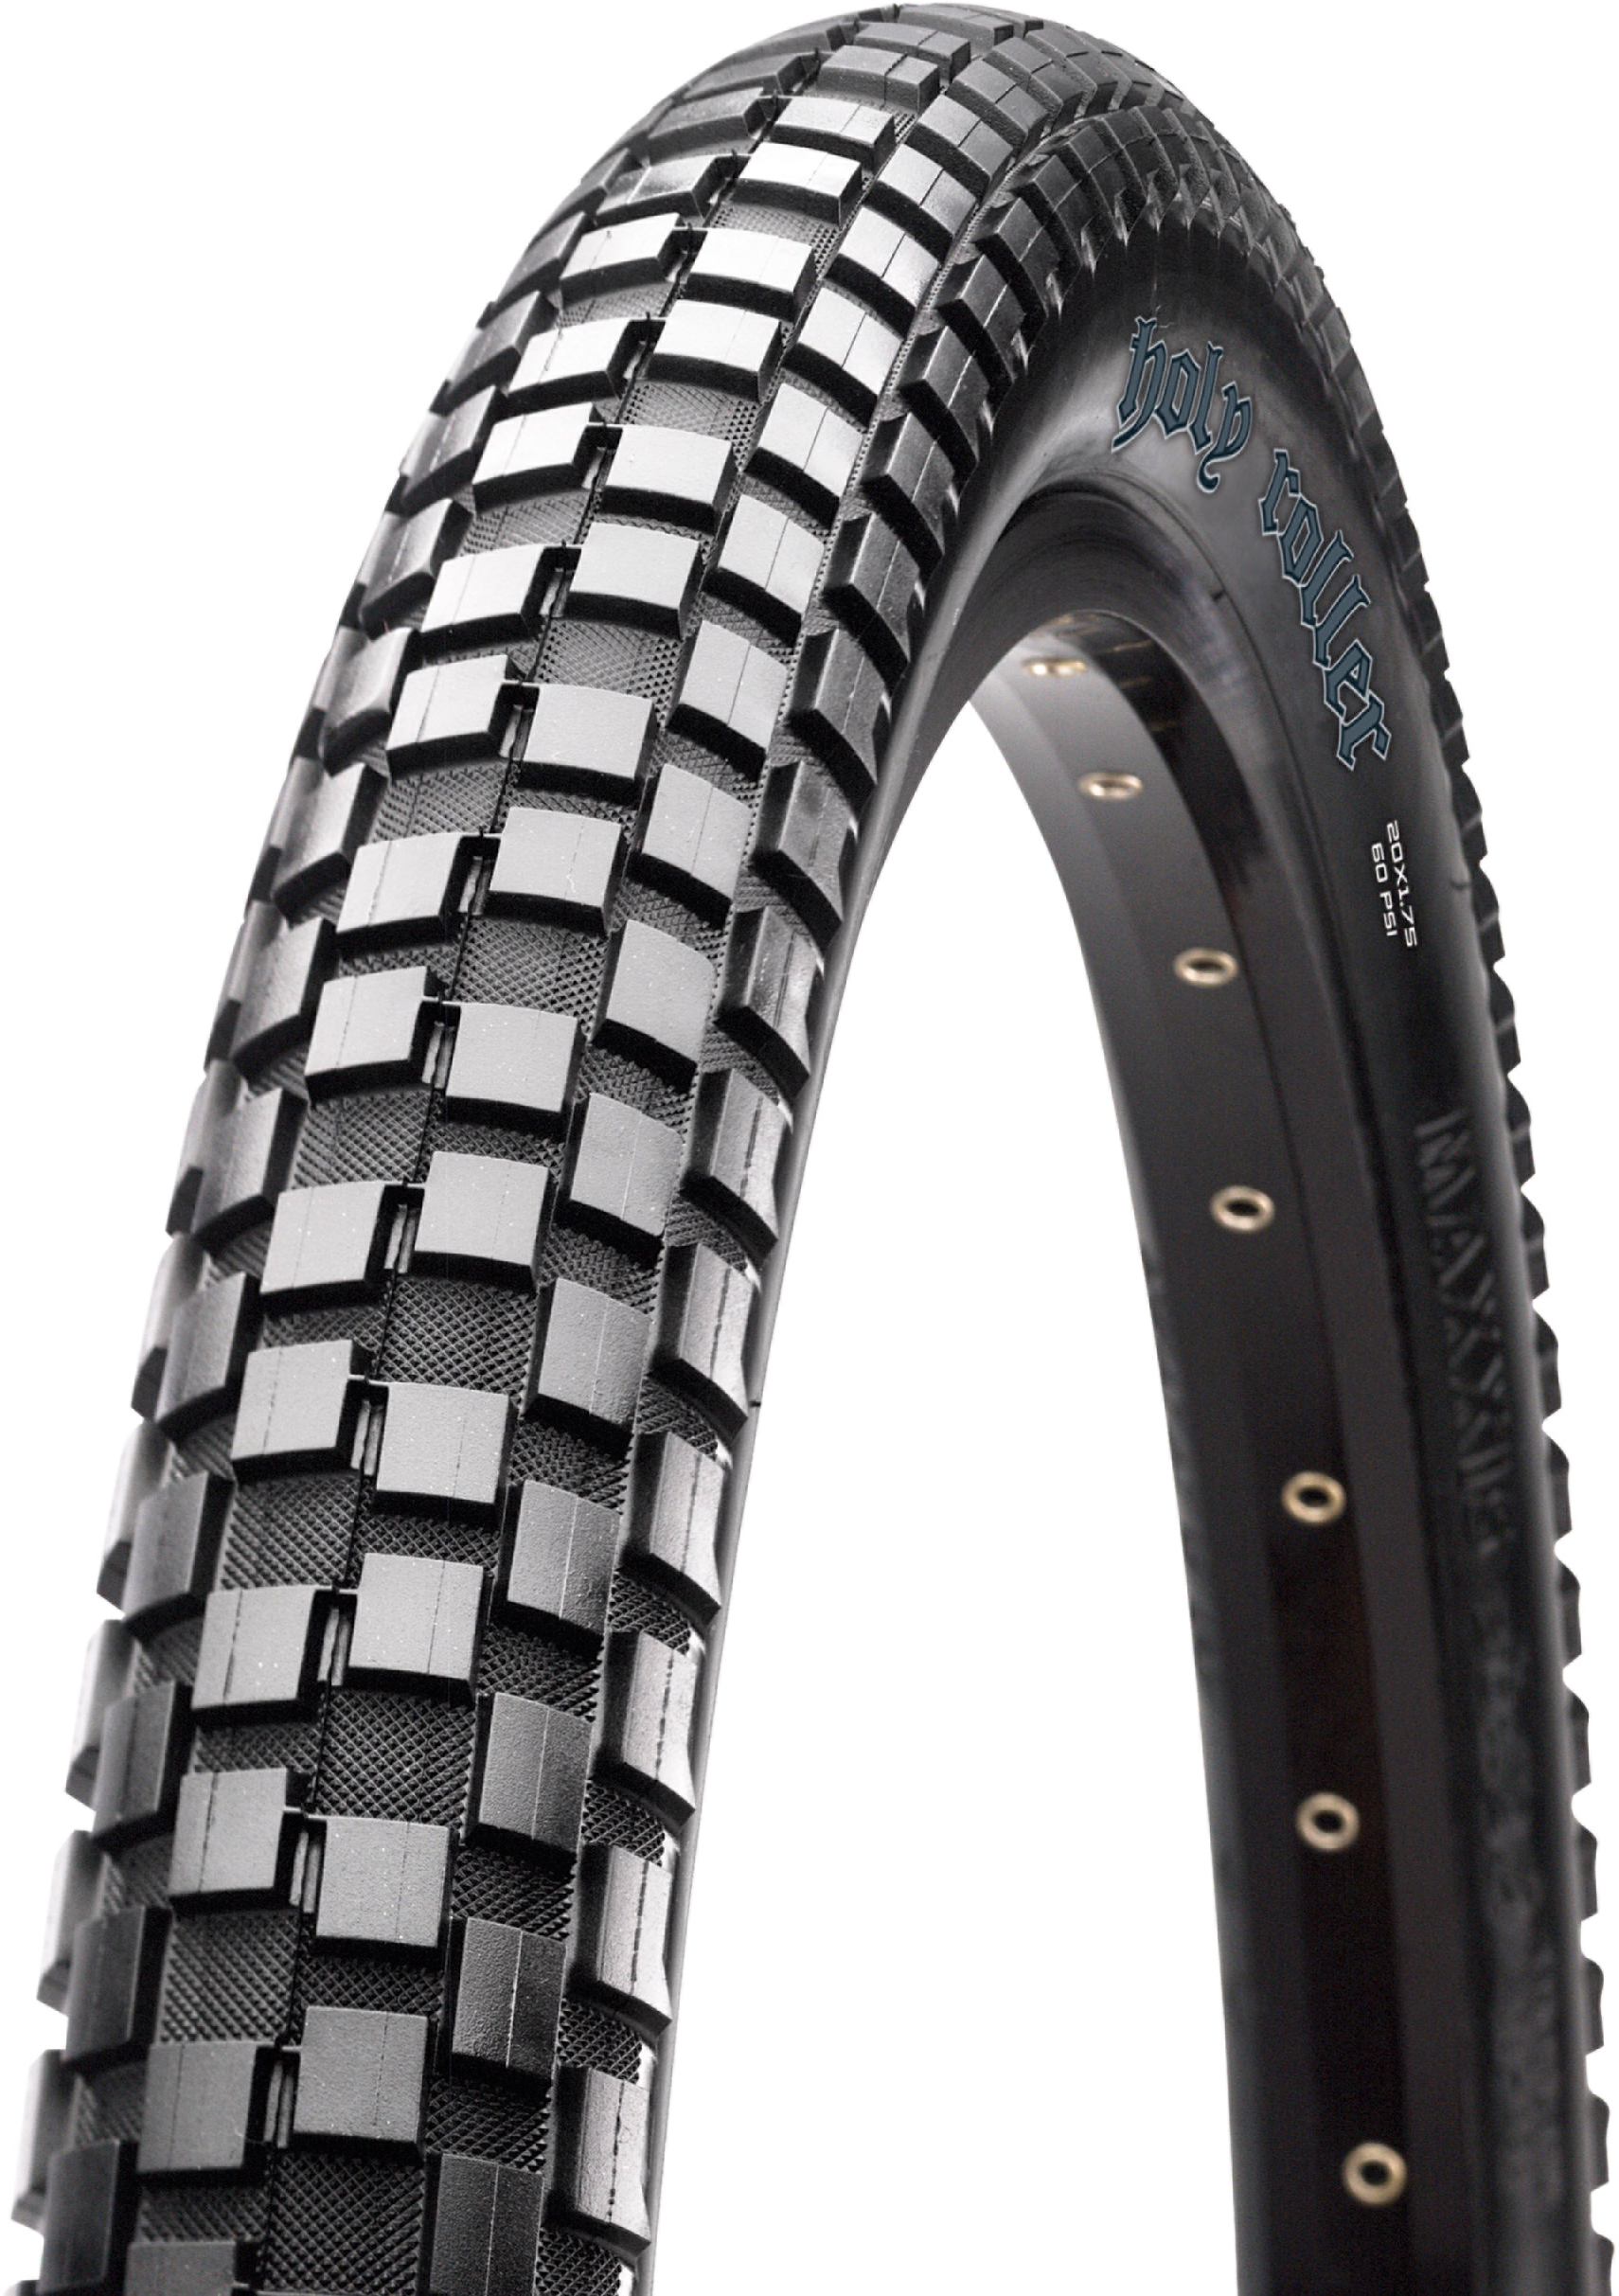 Maxxis Holy Roller Wired BMX Tyre | Tyres